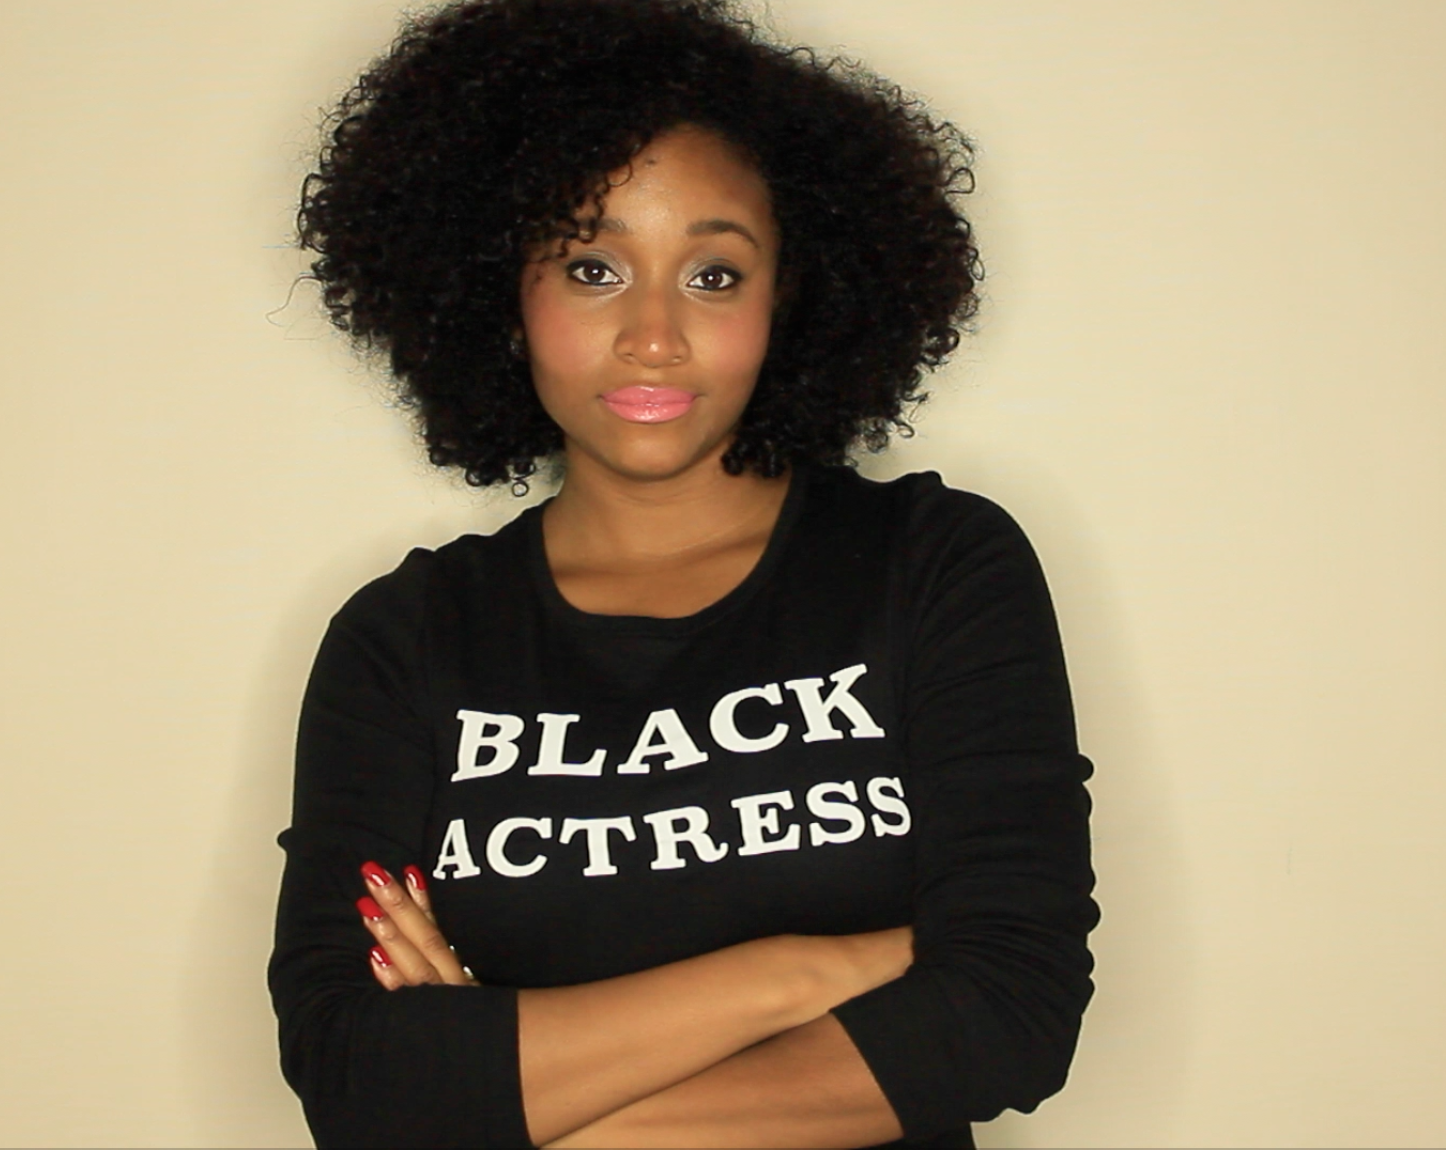 LOOK WHO'S NEXT Interview: Andrea Lewis